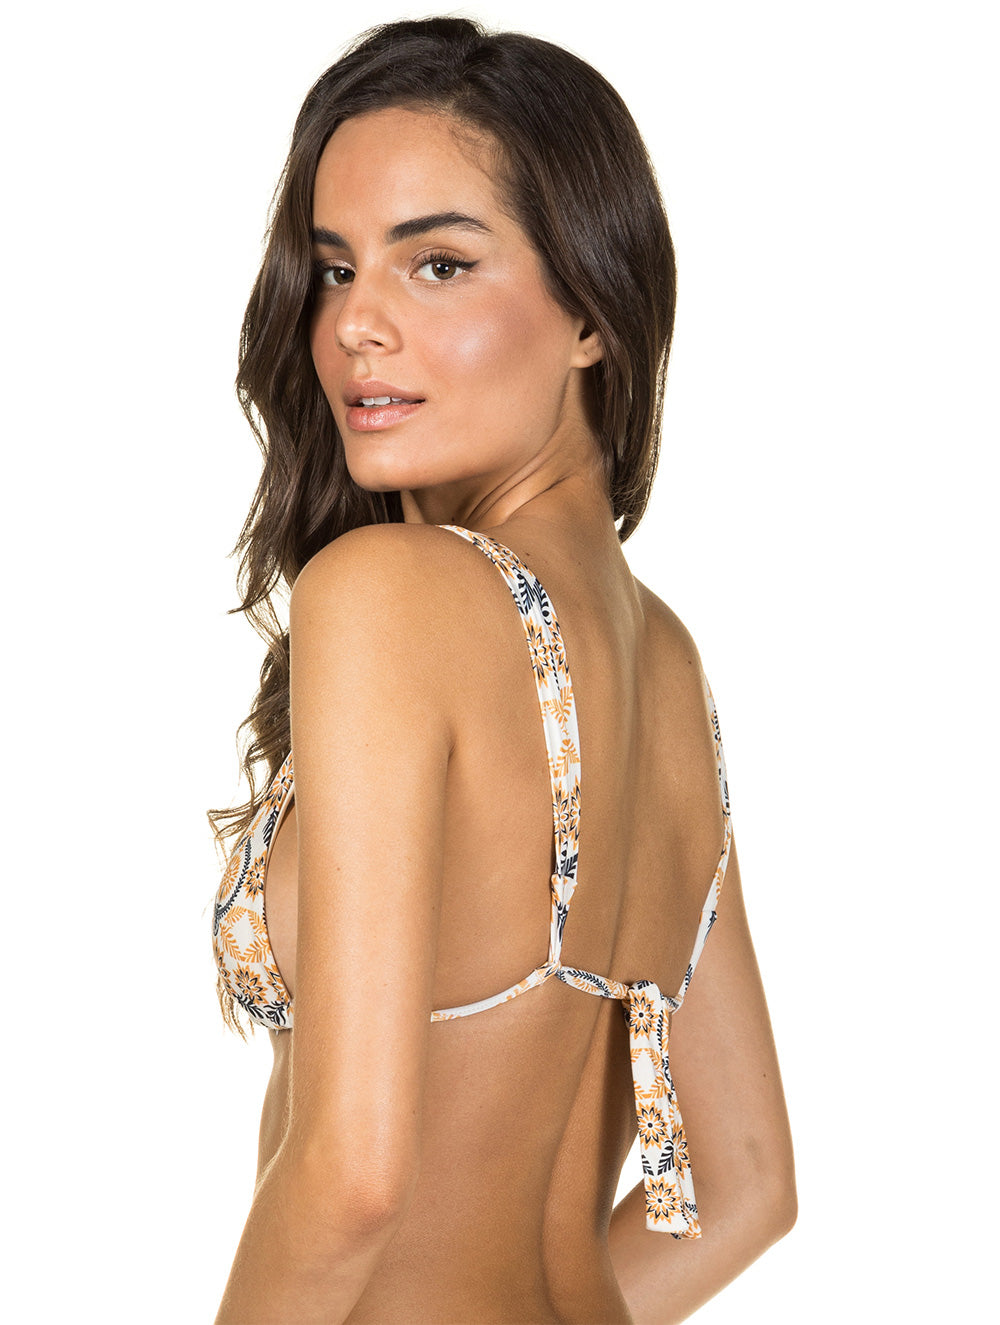 Mandala Sliding Triangle Top with crossover straps